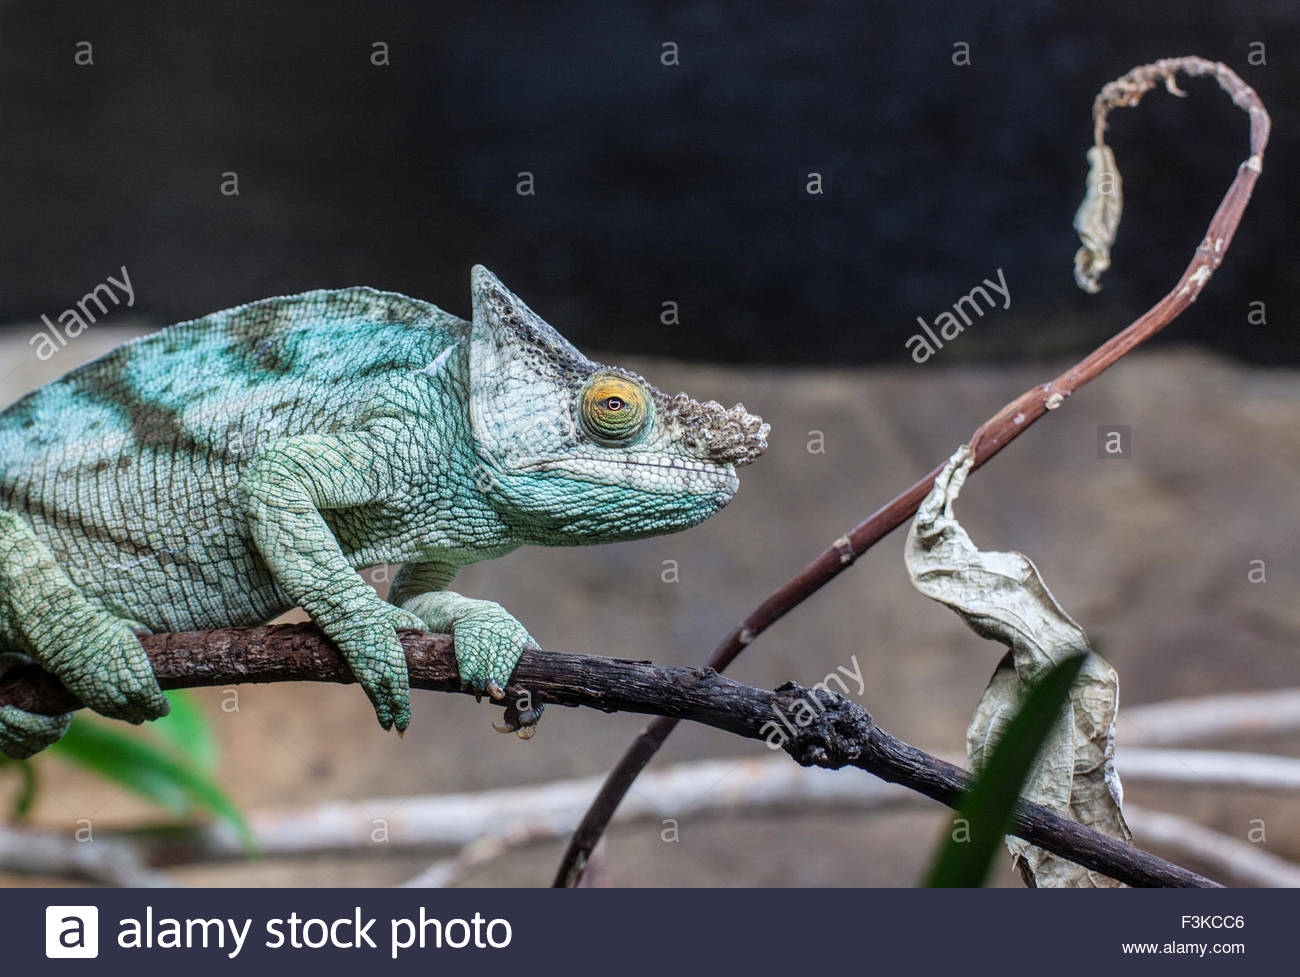 Male Parson's Chameleon with piercing eye - Stock Image